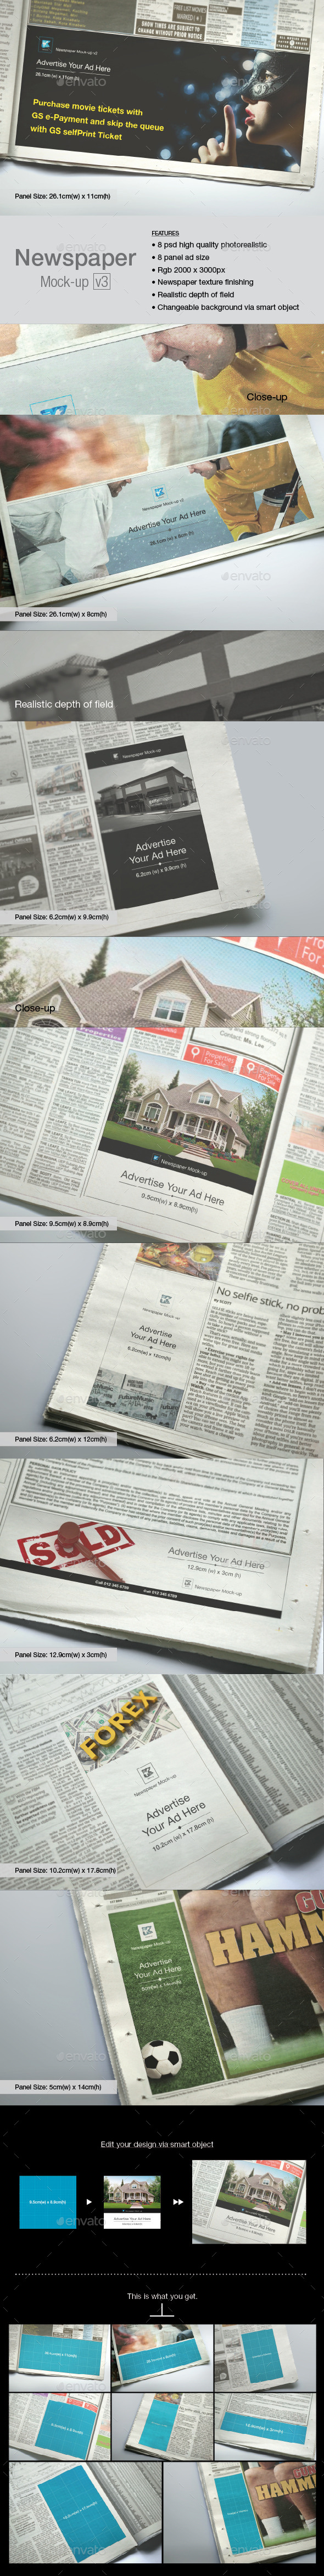 Newspaper Mock-up v3 - Print Product Mock-Ups